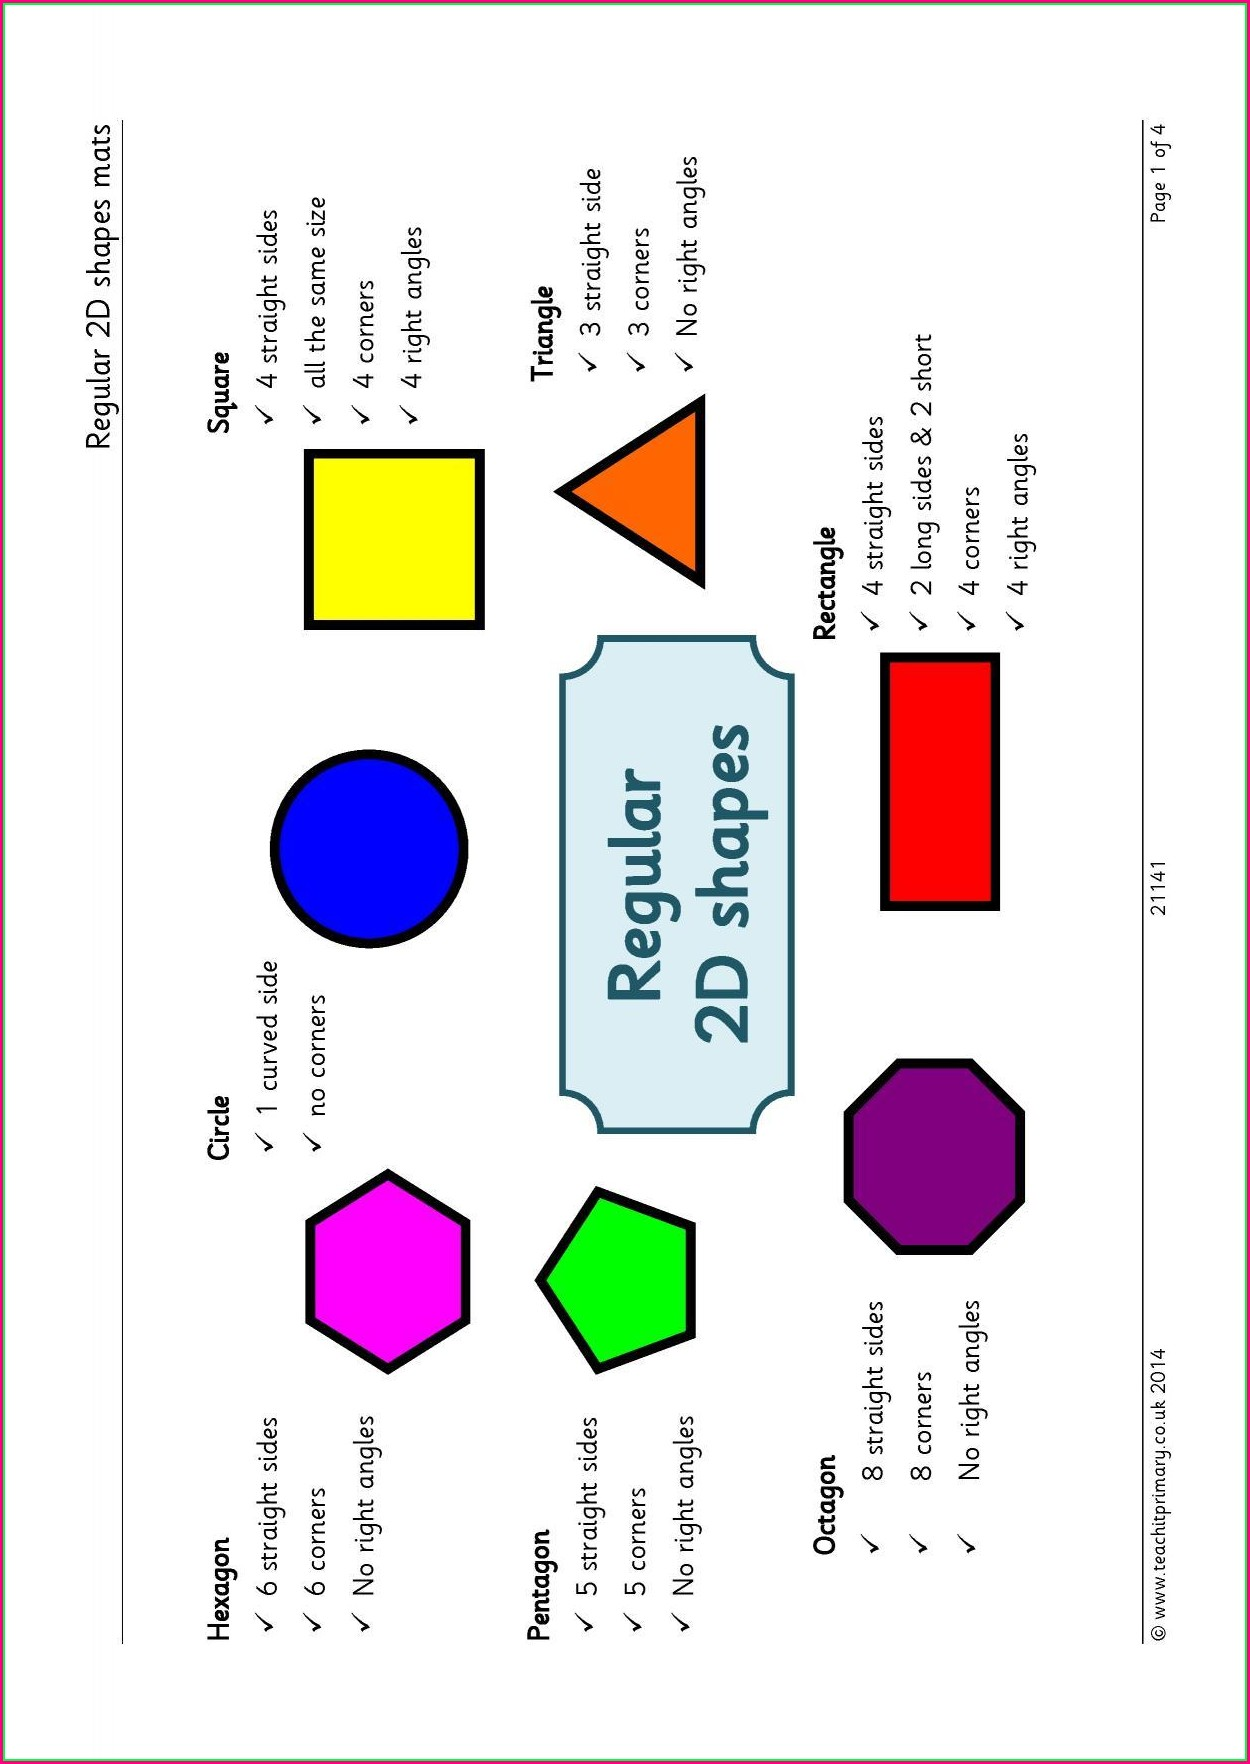 Describing Words Worksheet For Grade 1 Worksheet